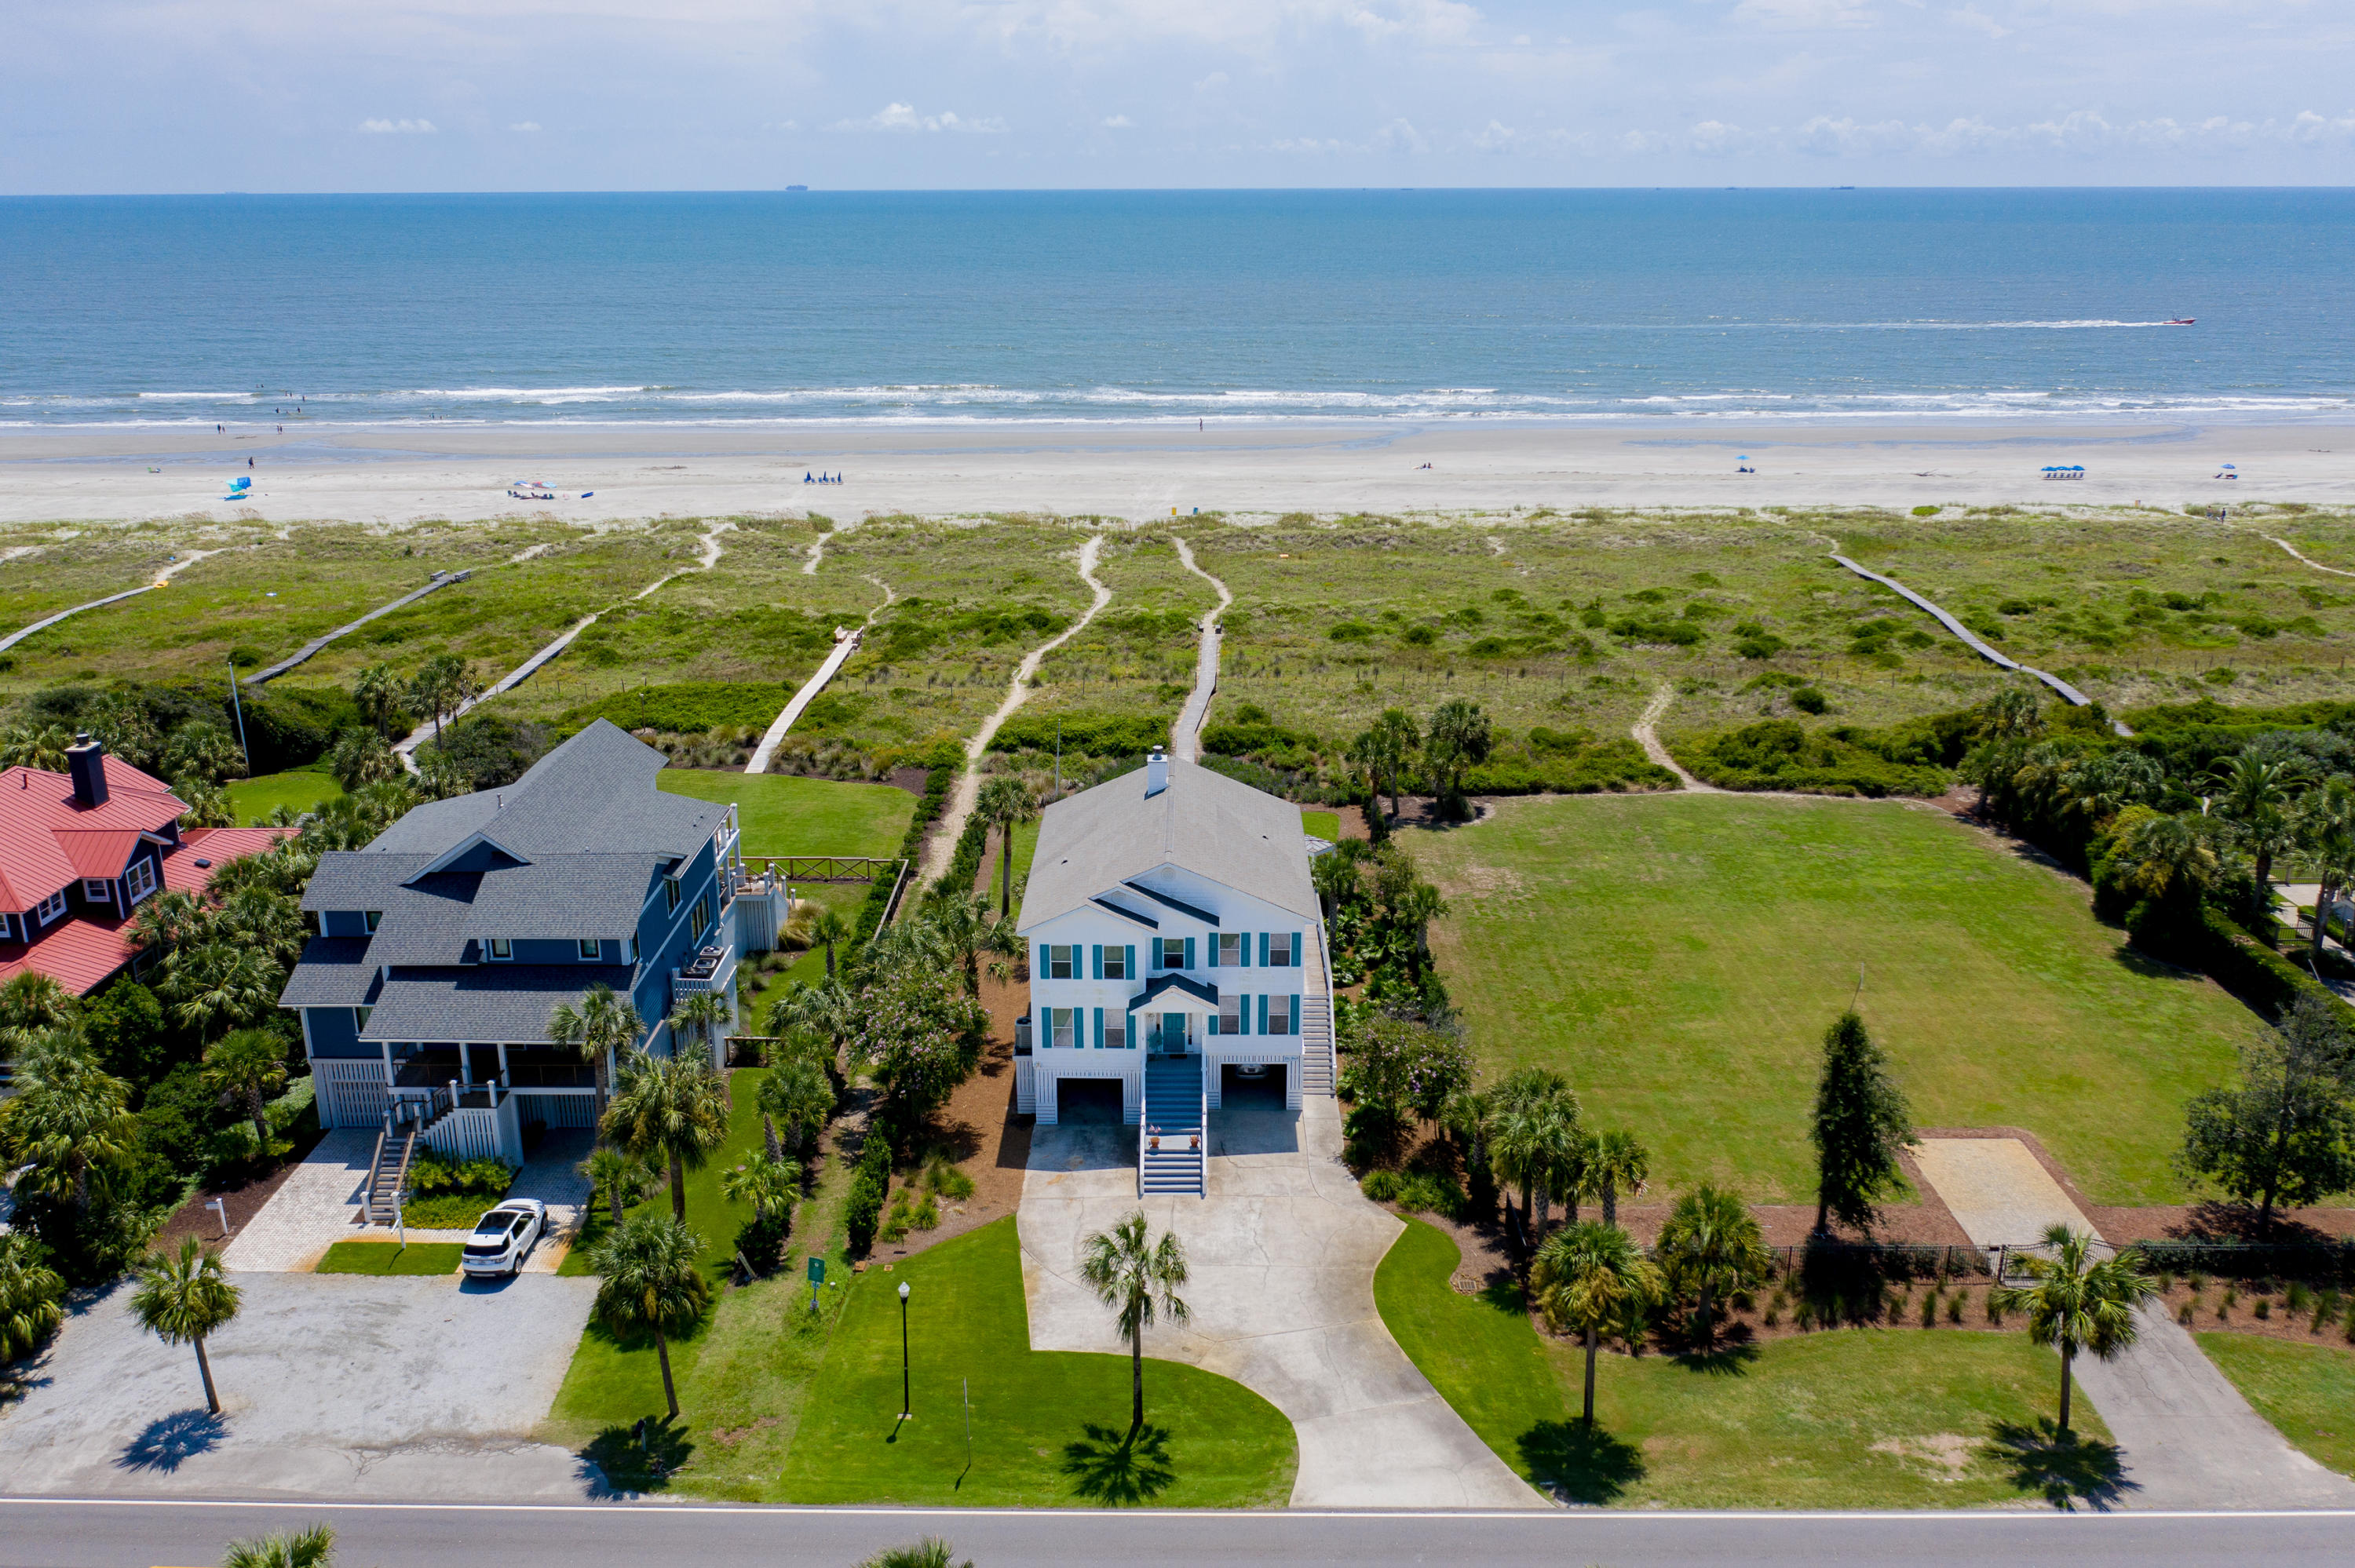 Isle of Palms Homes For Sale - 3808 Palm, Isle of Palms, SC - 30